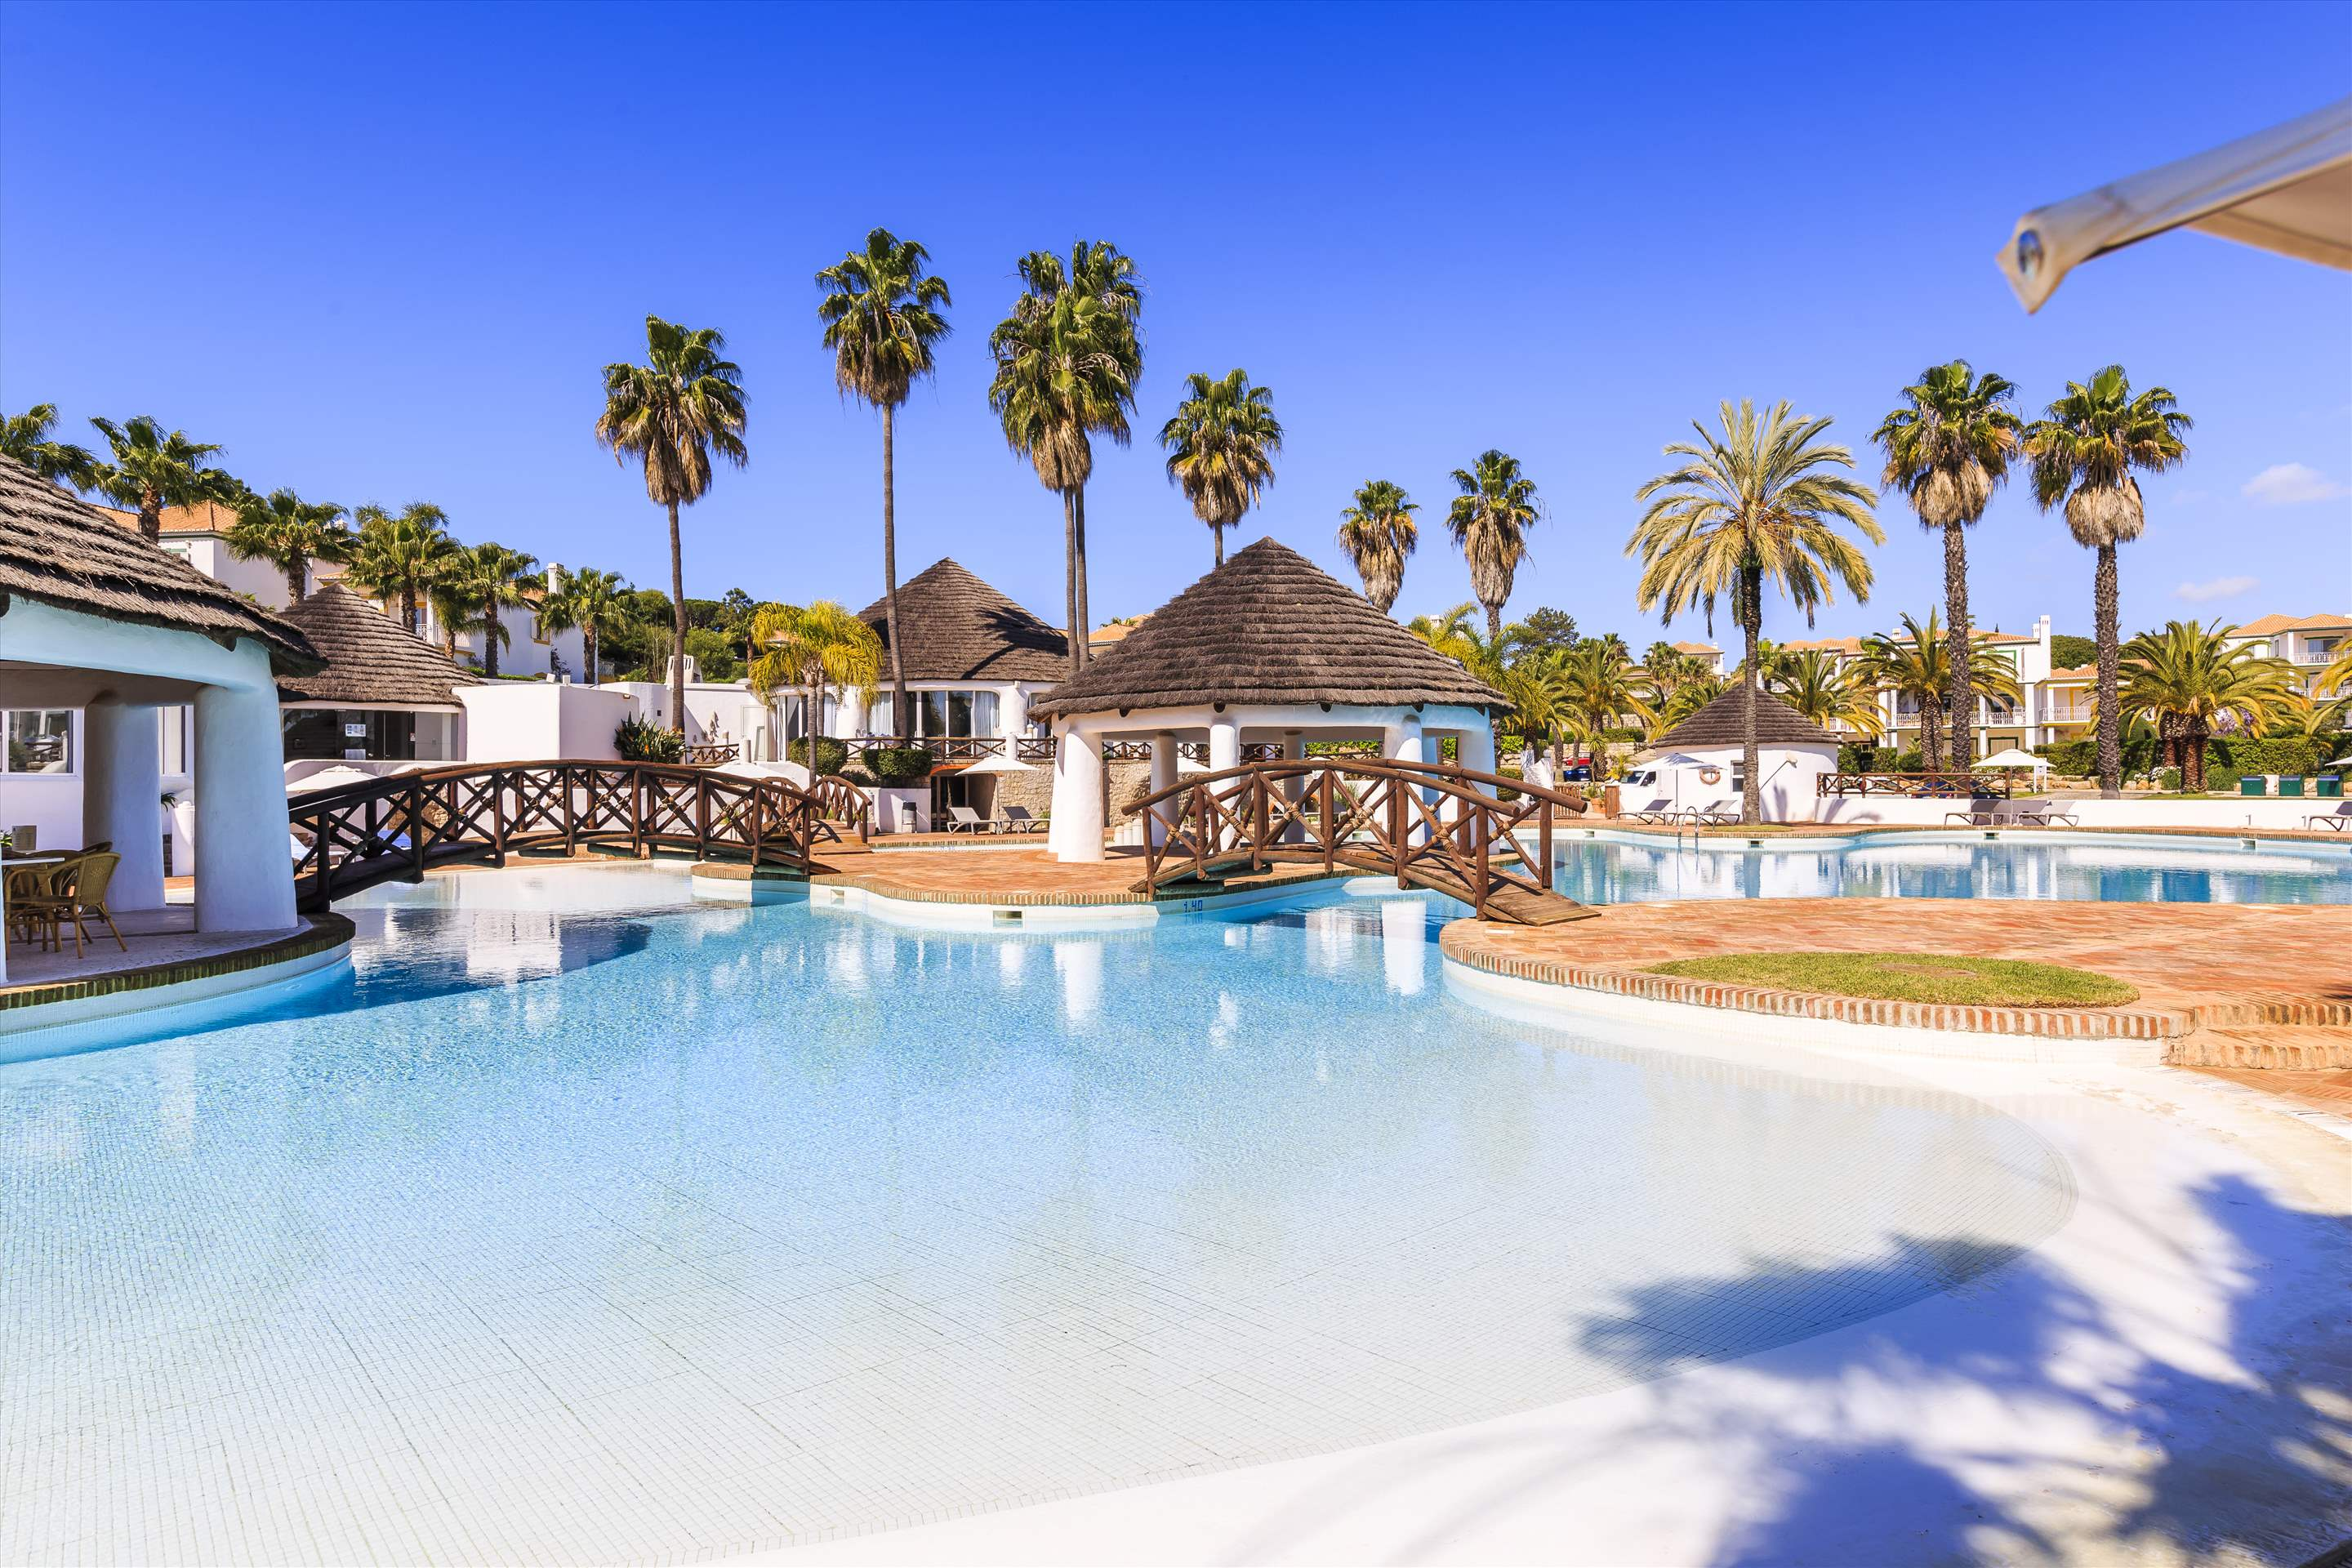 Encosta do Lago 2 Bedroom Apt, Private Pool, 2 bedroom apartment in Encosta do Lago Resort, Algarve Photo #20